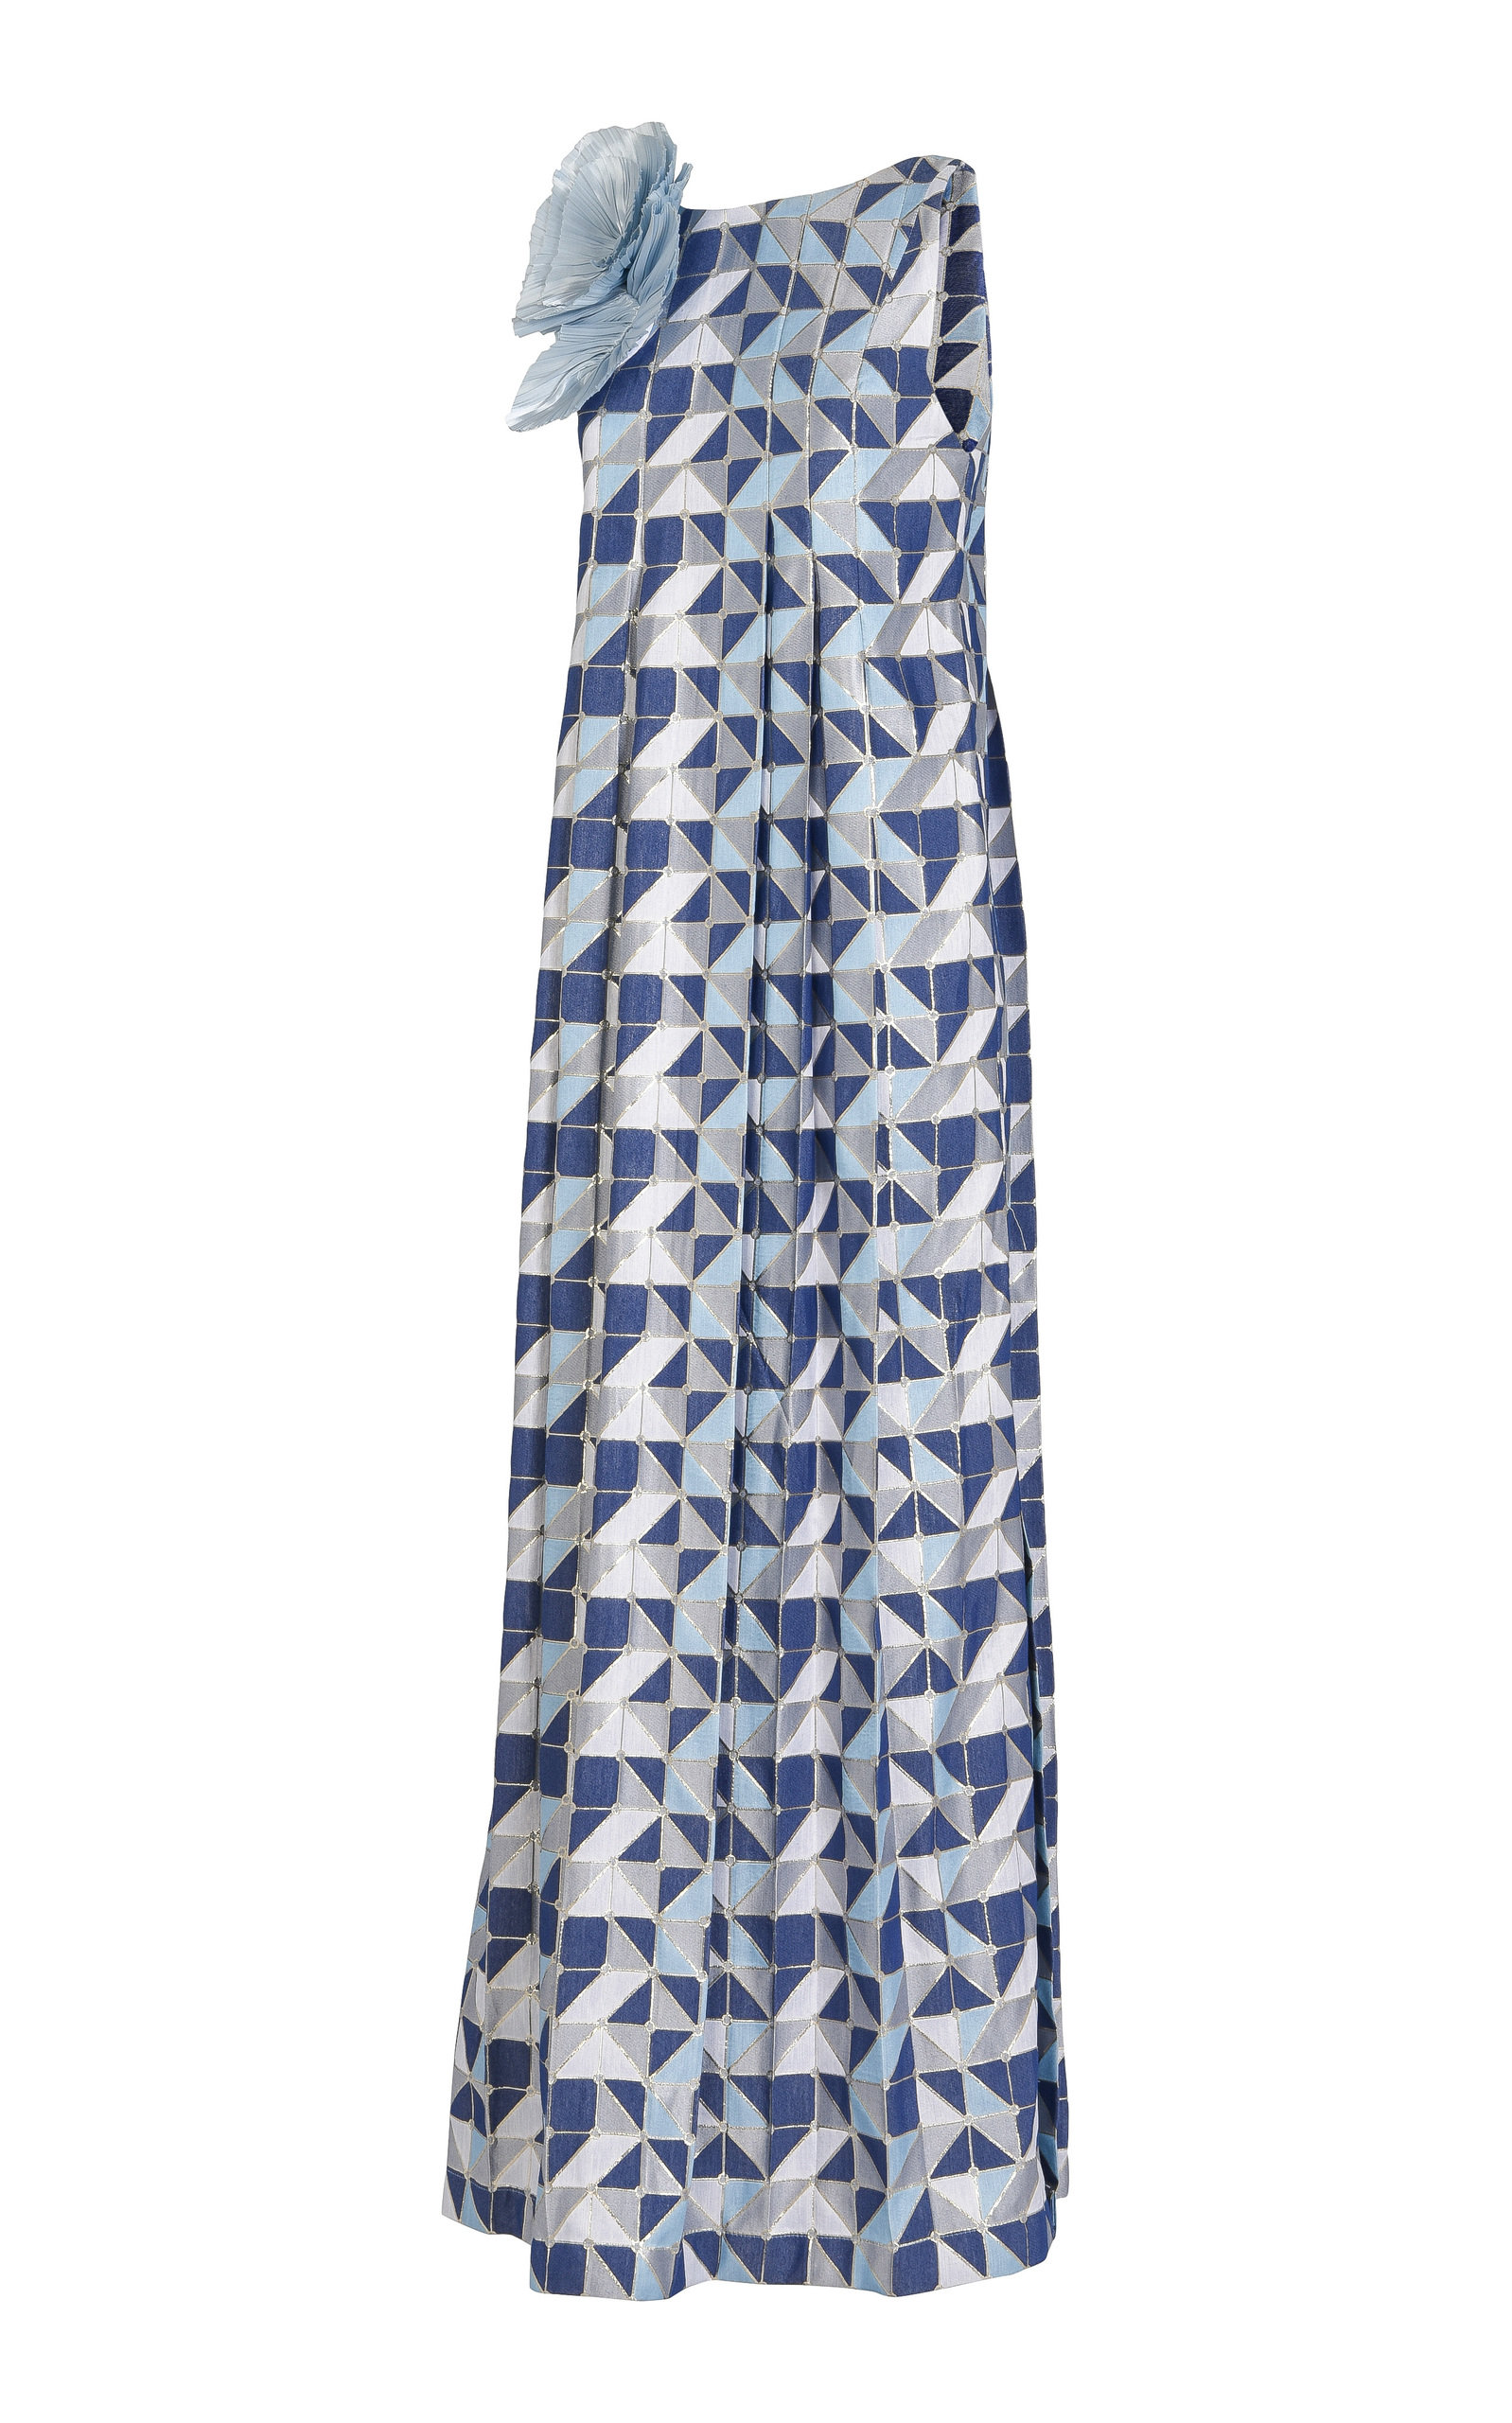 AMIRA HAROON A-Line Pleated Maxi Dress in Blue